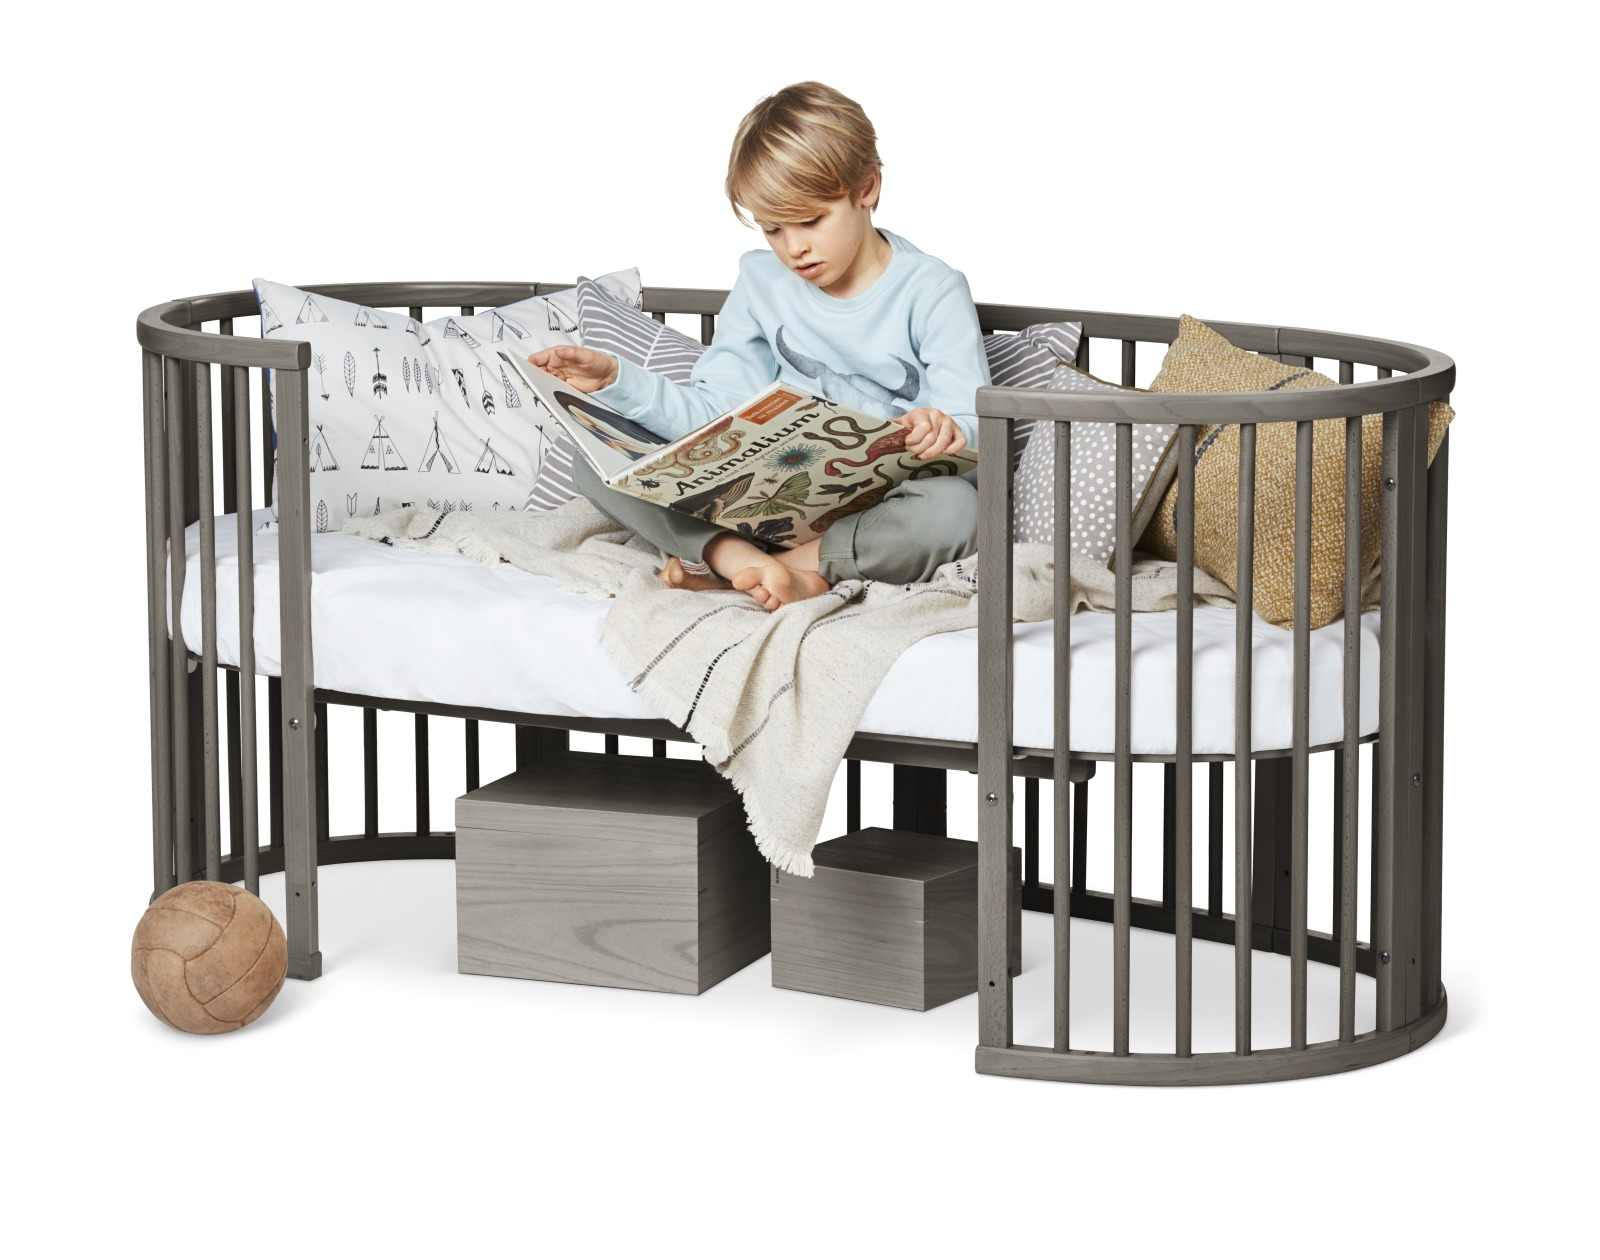 Stokke® Sleepi™ Junior Bed, Hazy Grey.